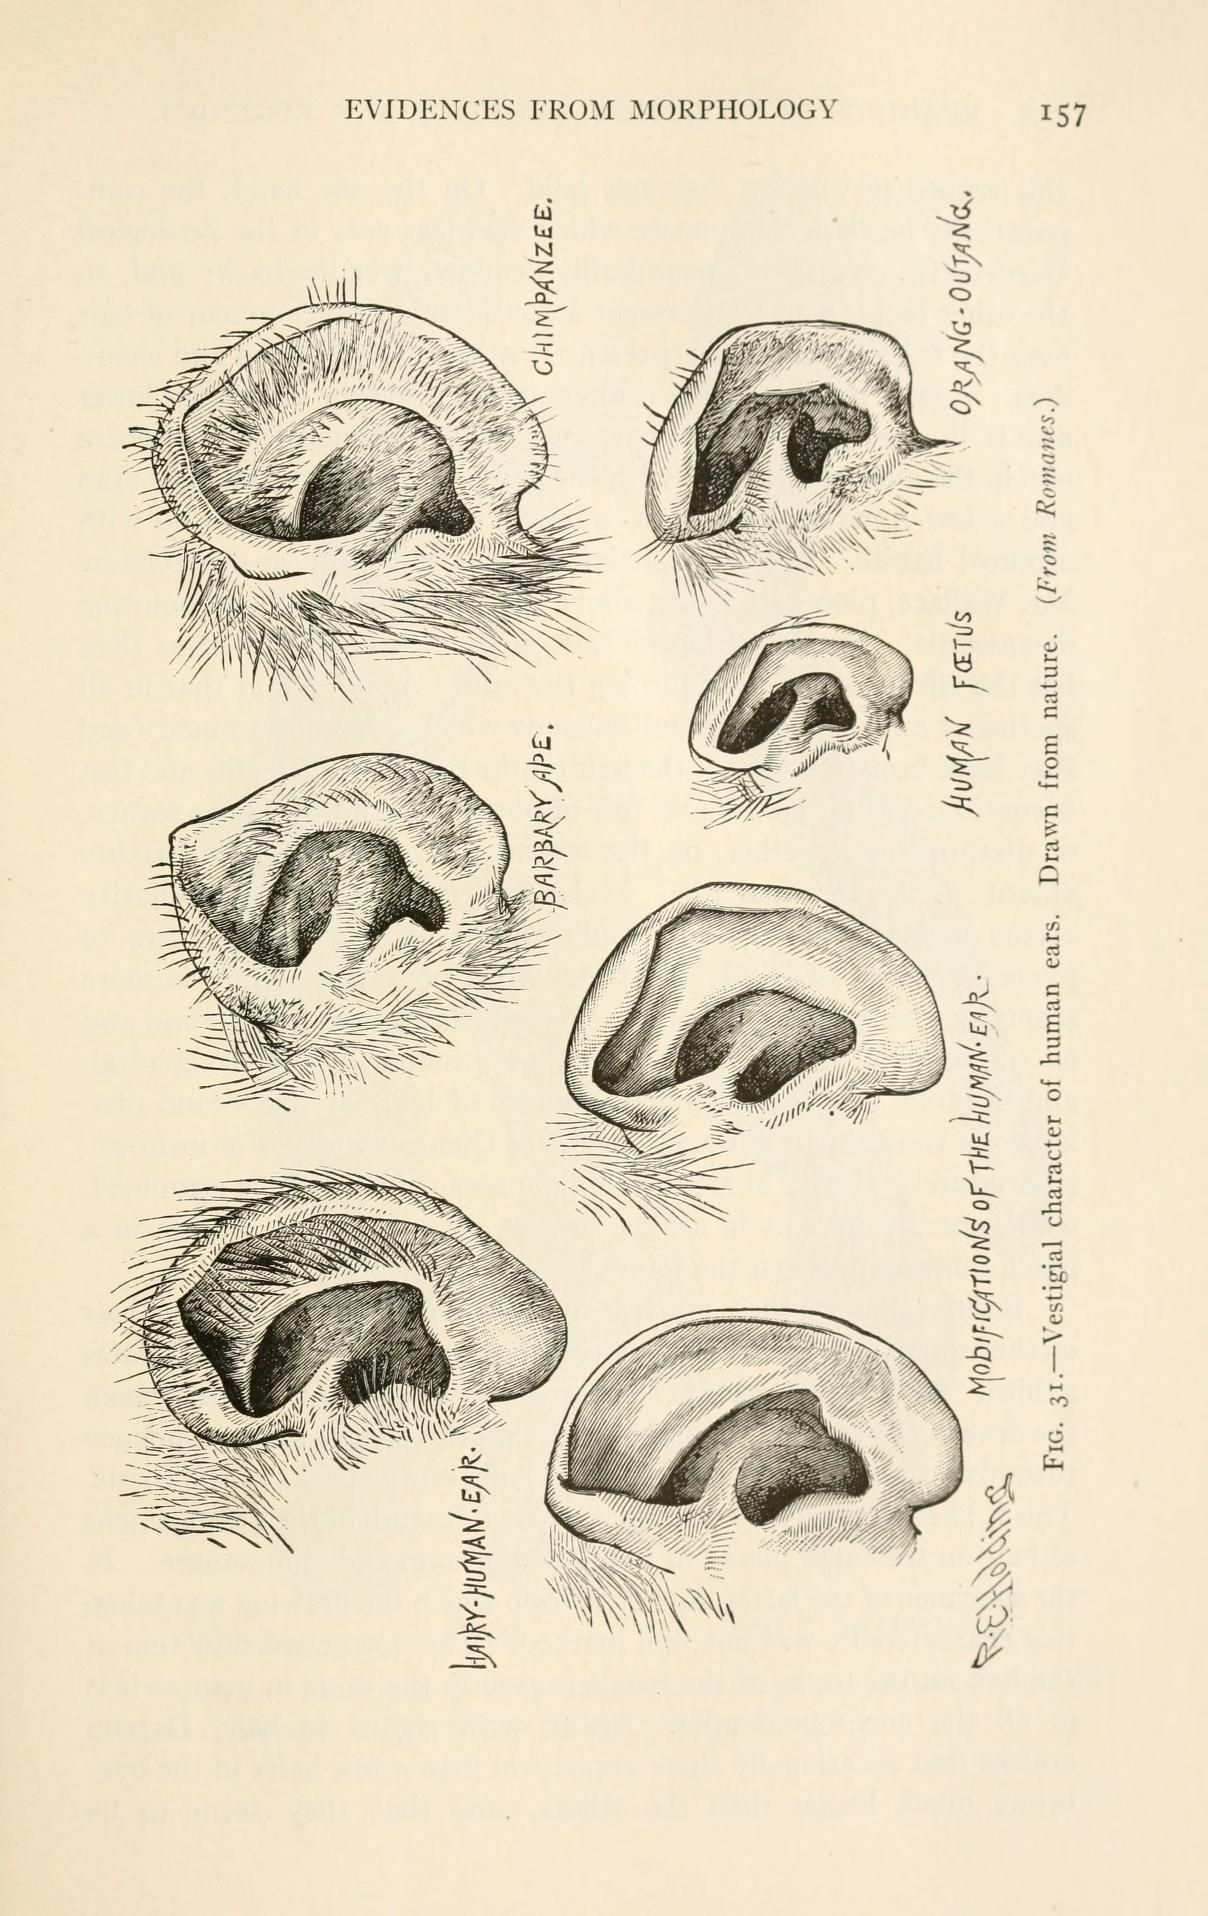 Readings in evolution, genetics, and eugenics | comparative Anatomy ...